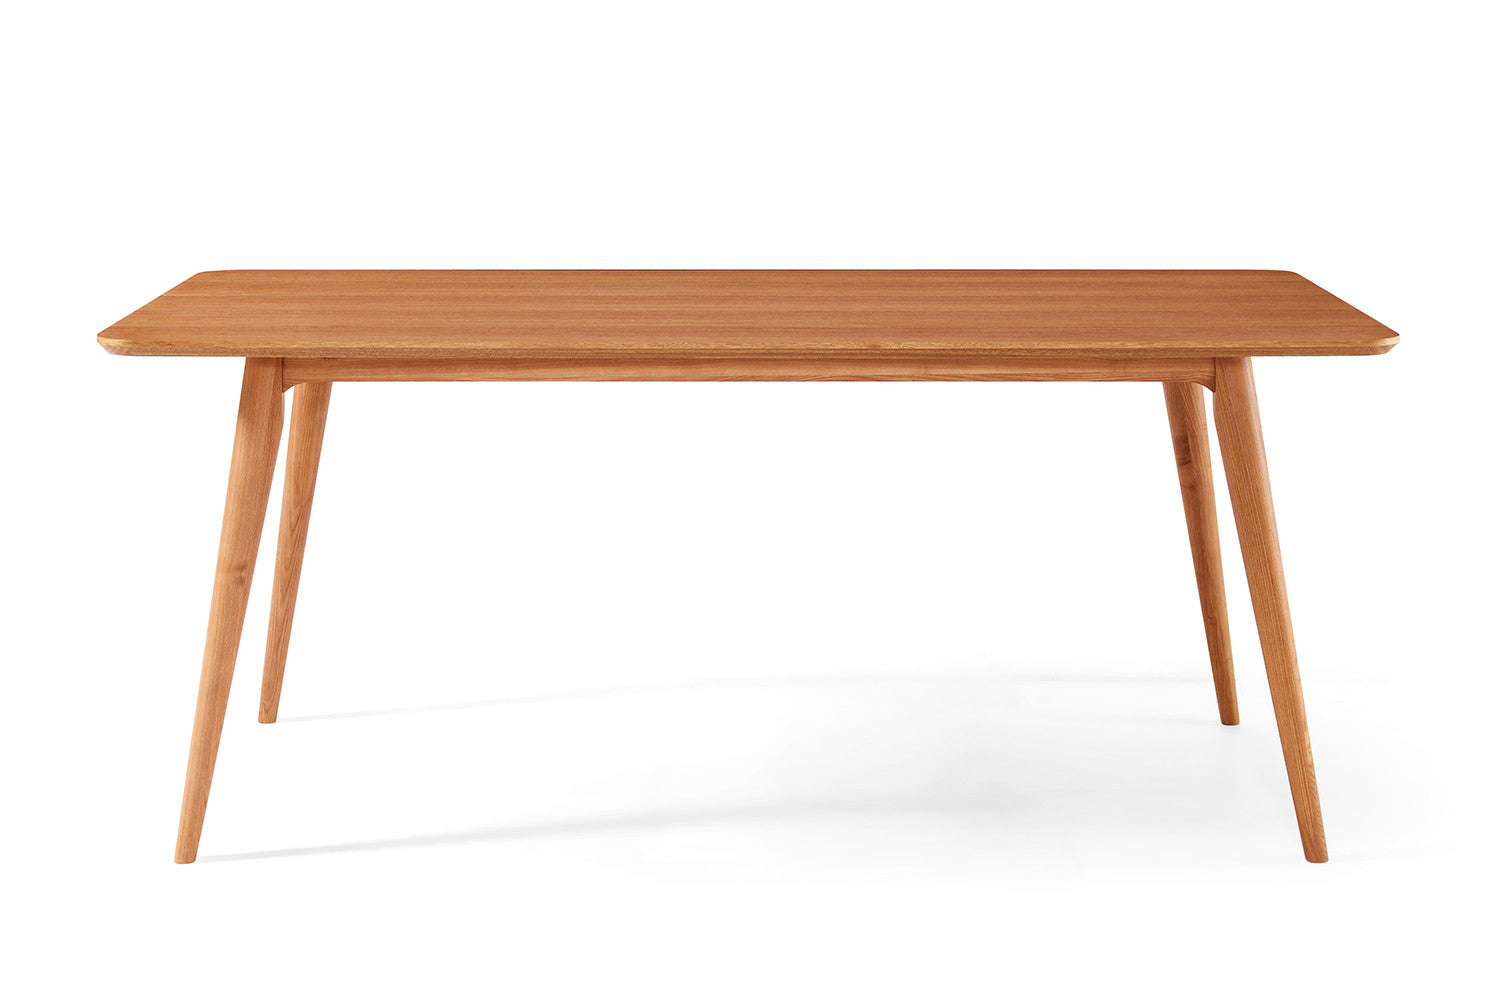 Table de salle manger design en bois julia dewarens for Table de salle a manger design scandinave